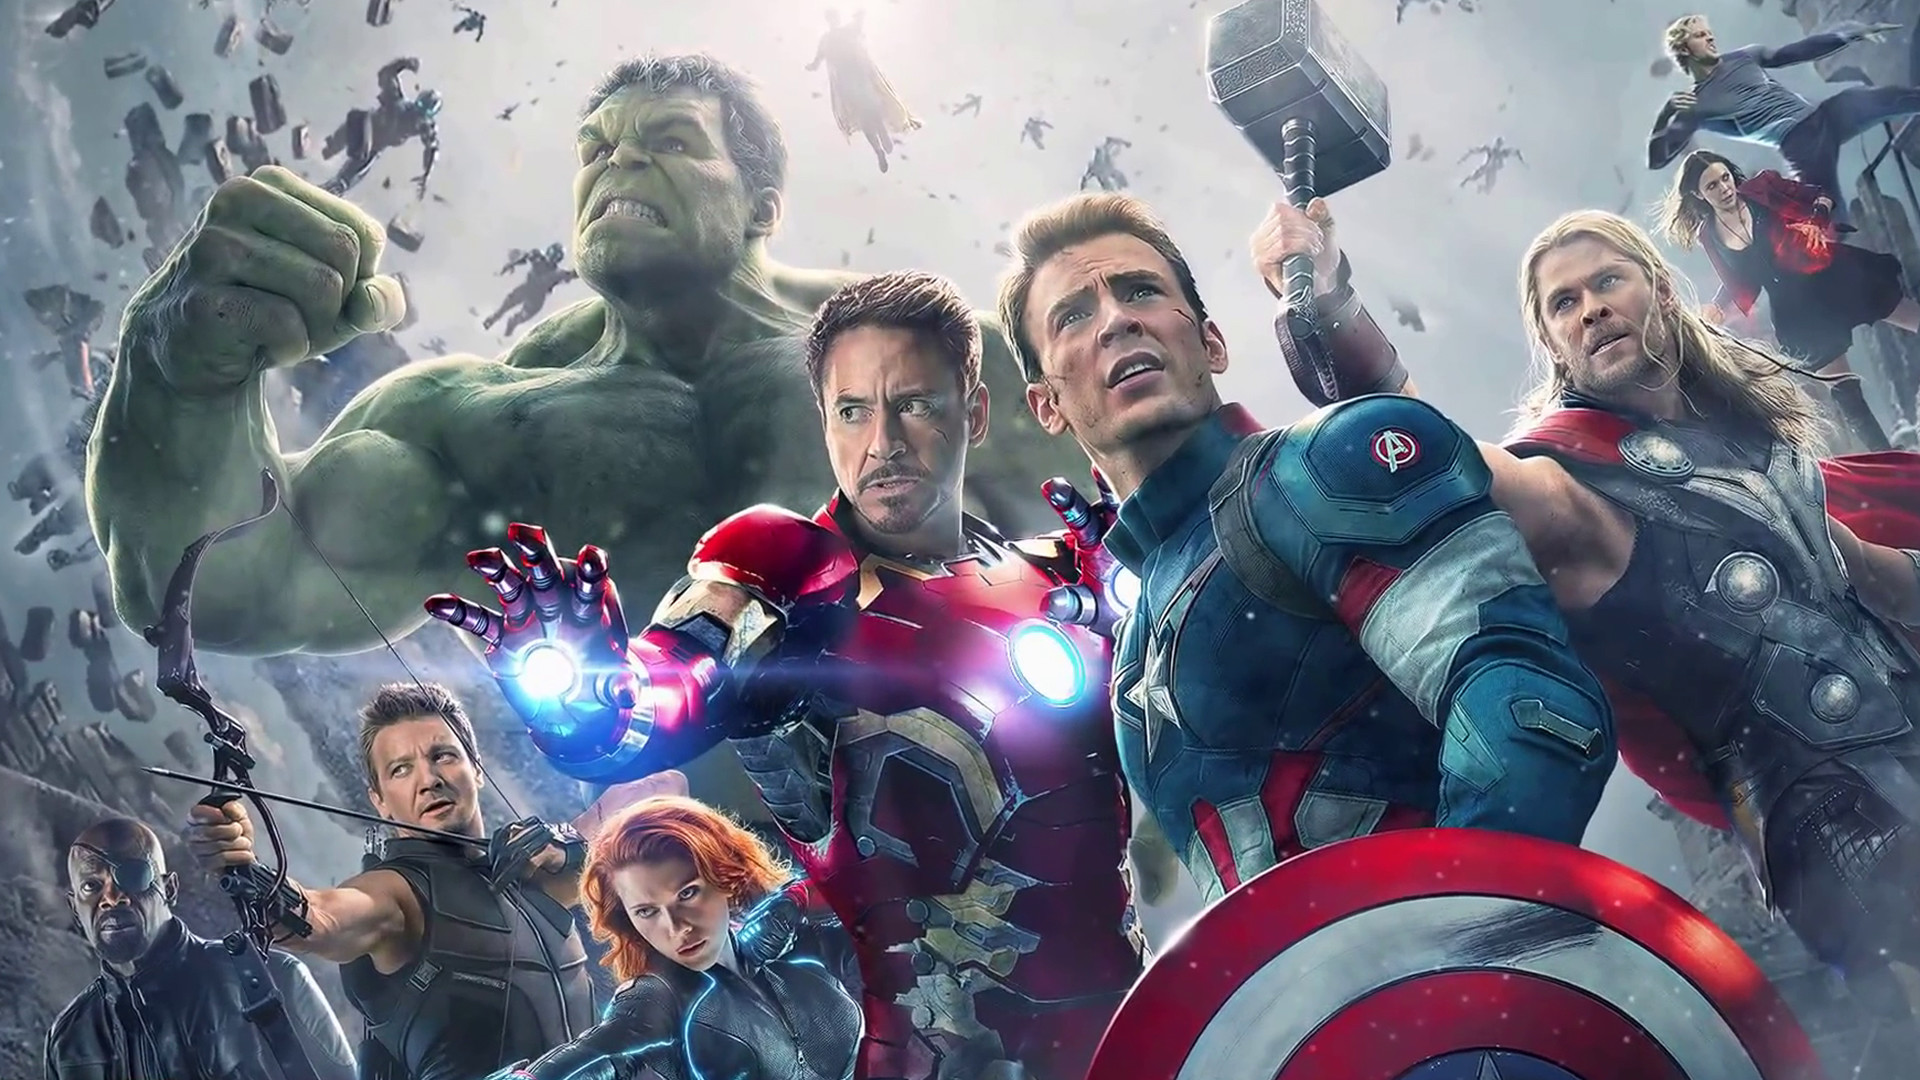 Avengers Age Of Ultron Wallpapers 1080p As Wallpaper HD